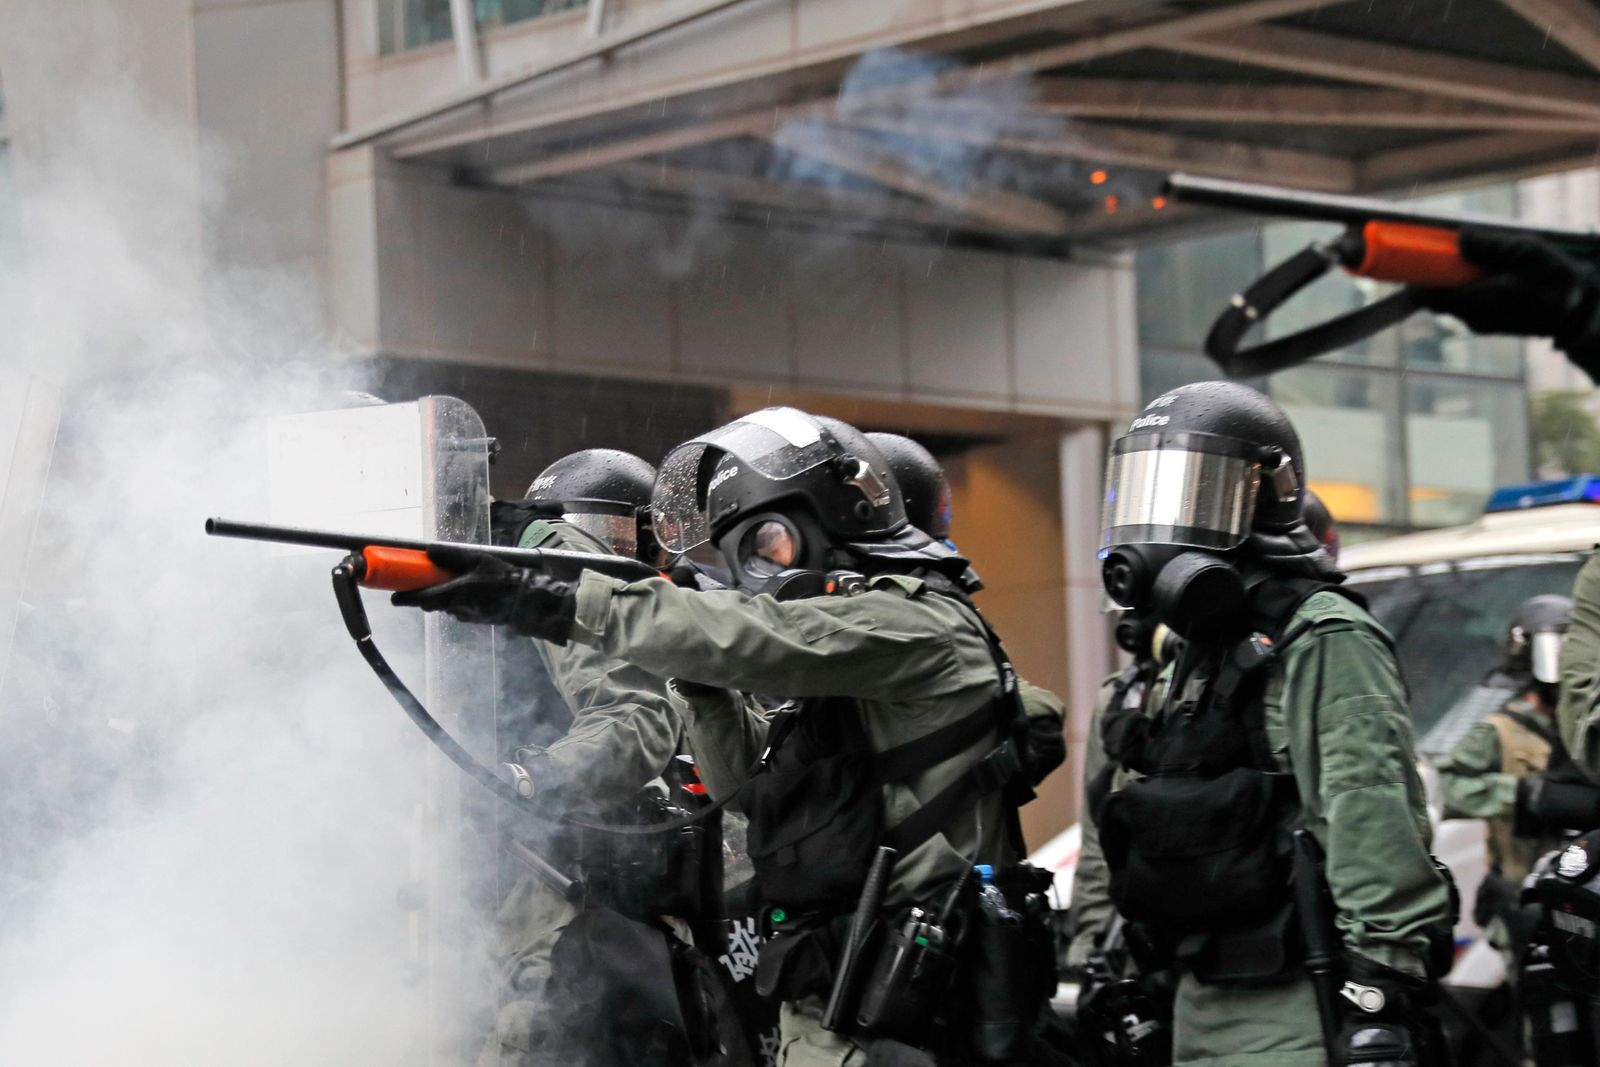 Riot policemen fire weapons during a confrontation with demonstrators during a protest in Hong Kong, Sunday, Aug. 25, 2019. (AP Photo/Kin Cheung)